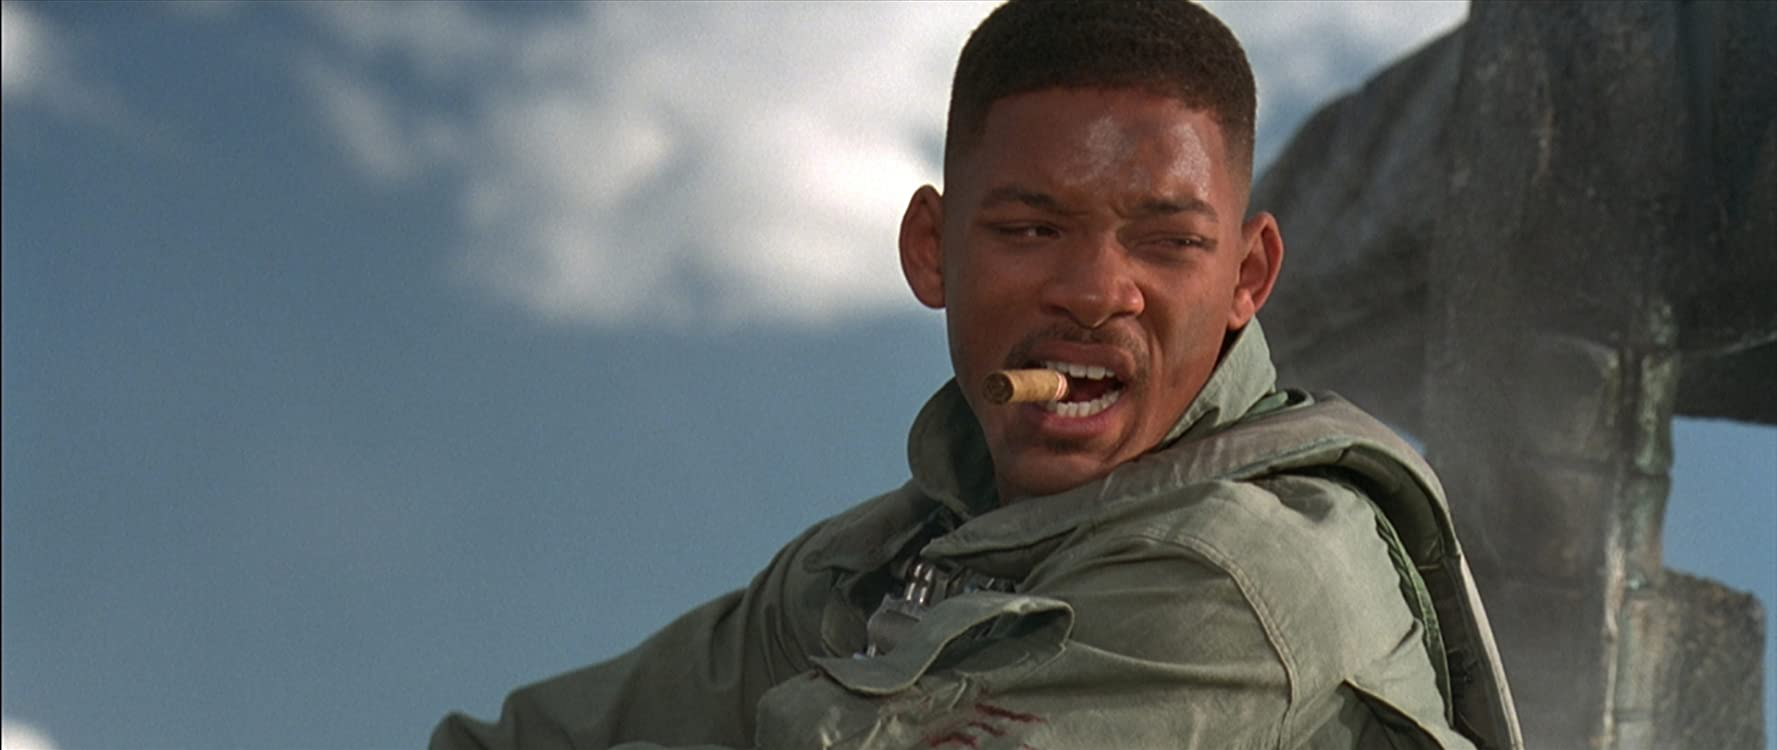 Will Smith in Independence Day (1996)